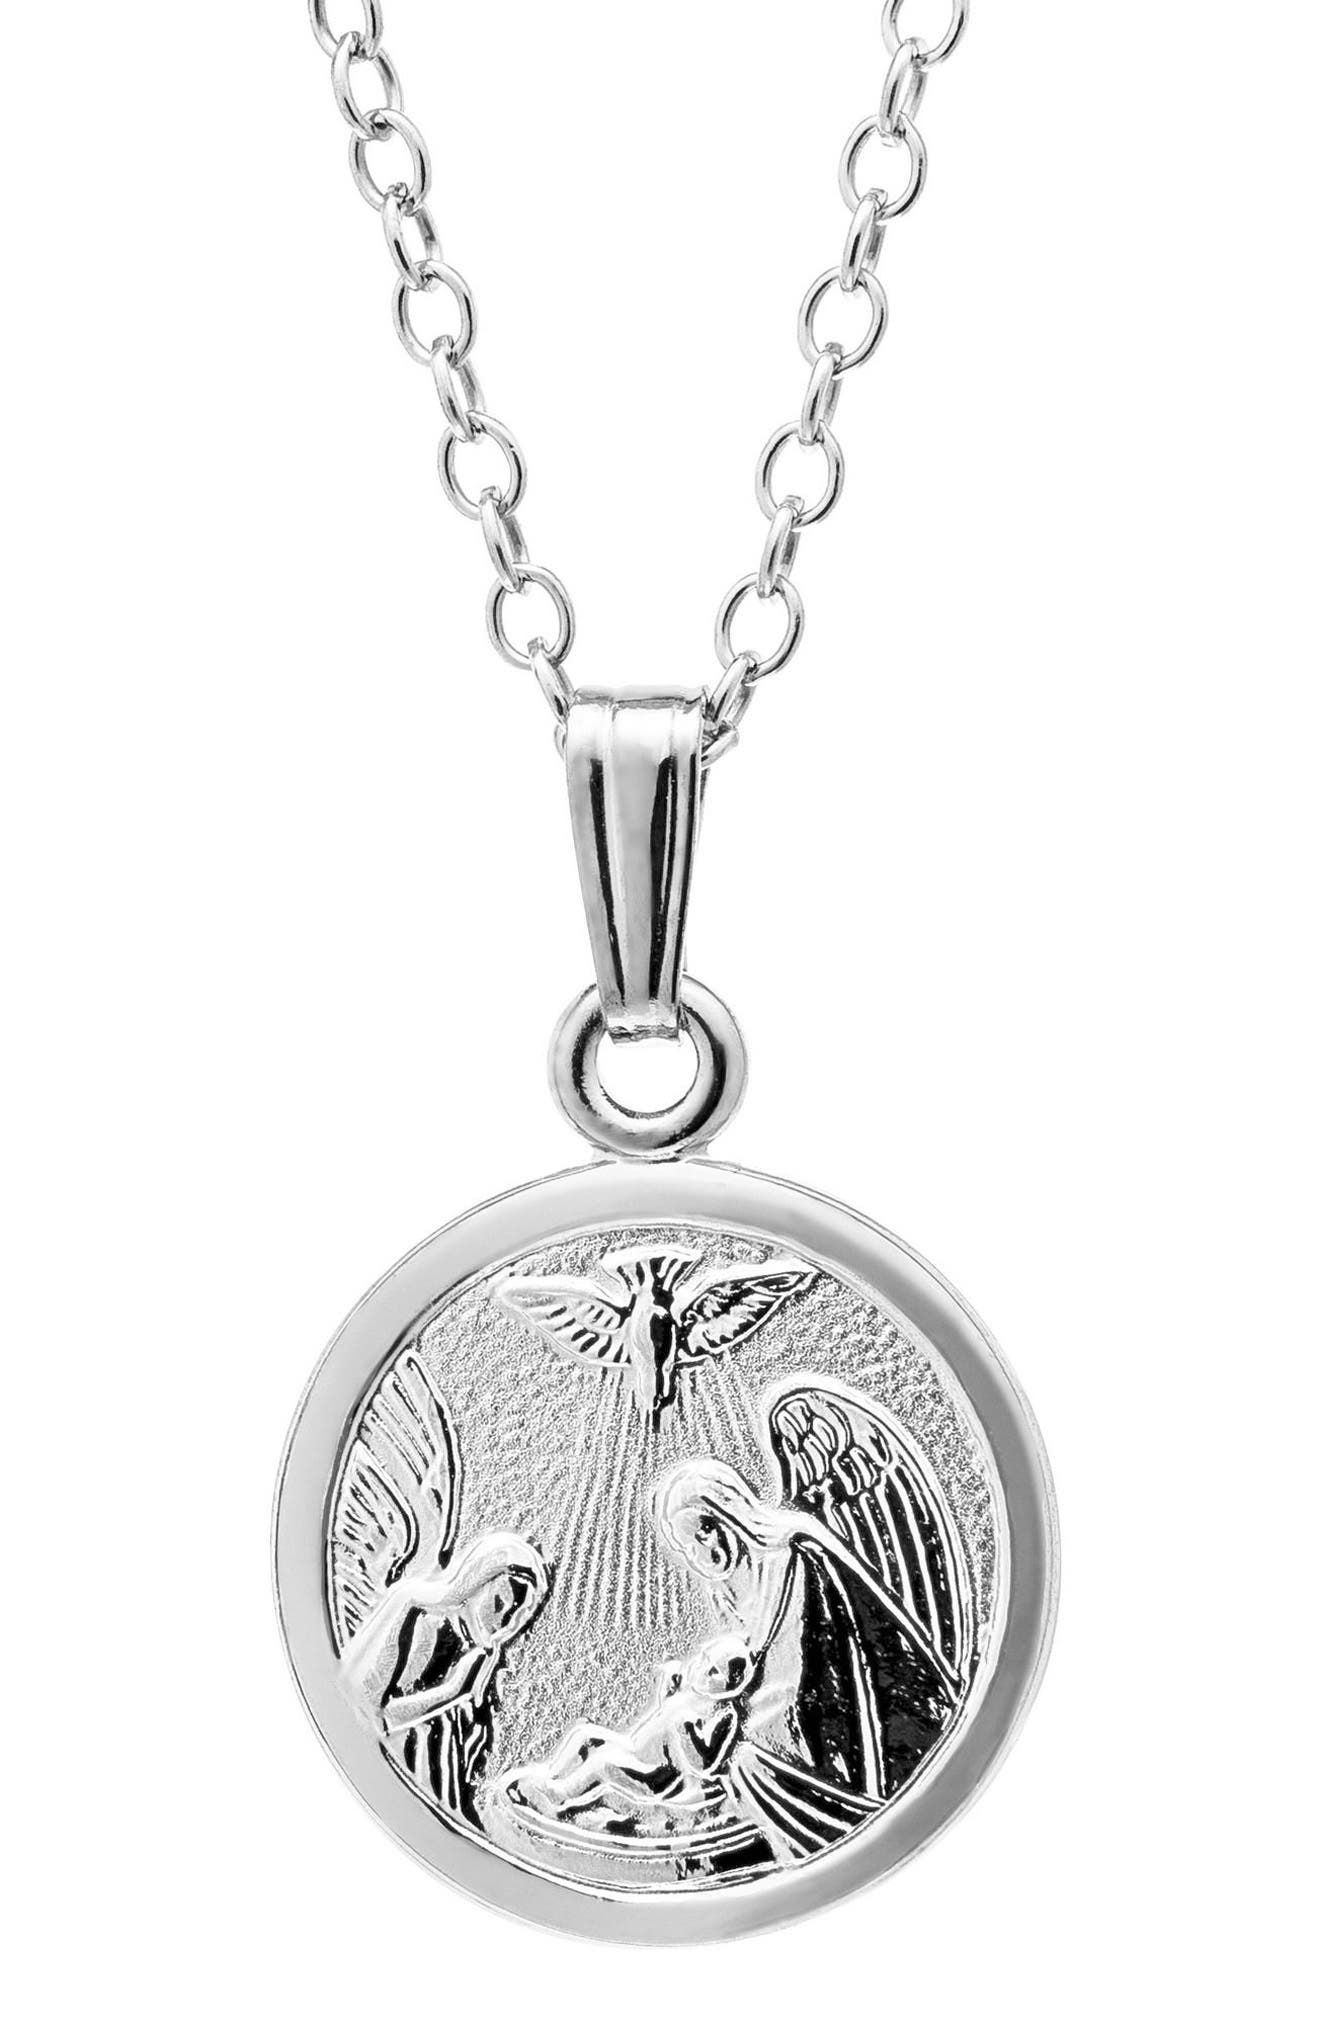 Main Image - Mignonette Sterling Silver Guardian Angel Pendant Necklace (Baby Girls)